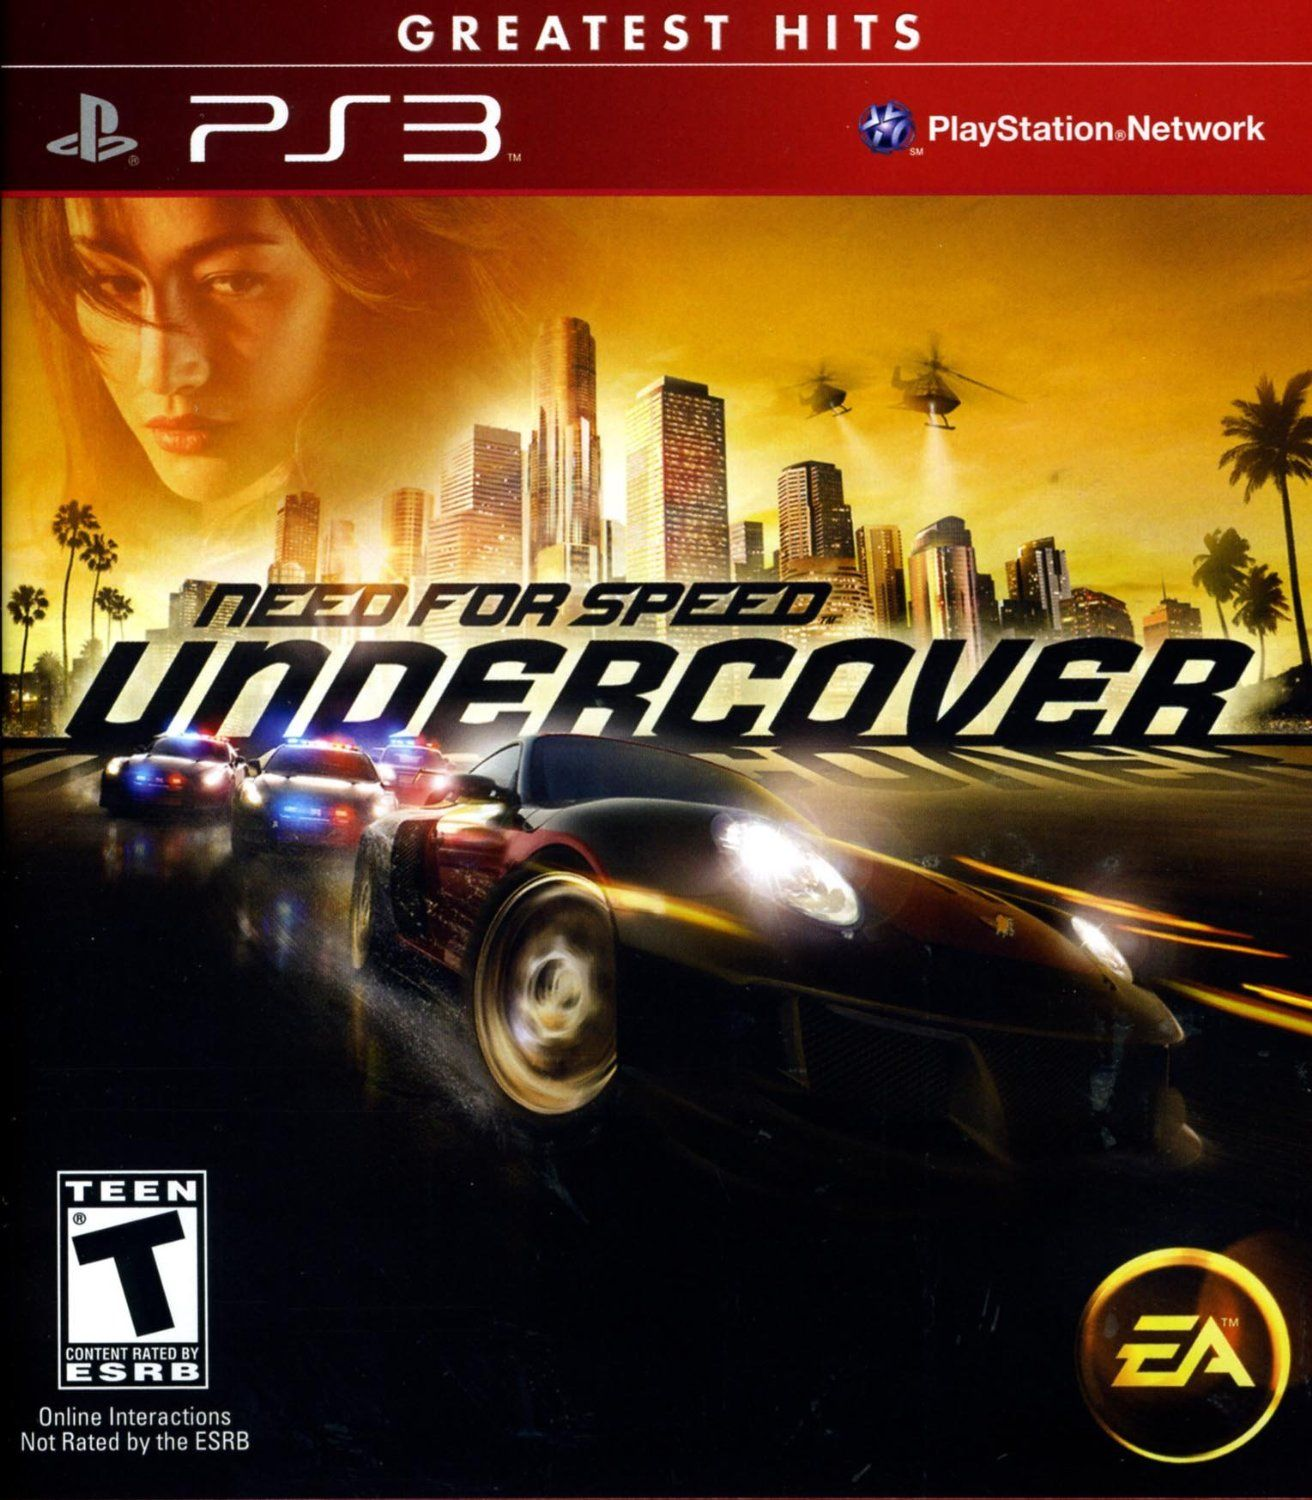 Robot Check Need For Speed Undercover Need For Speed Games Need For Speed